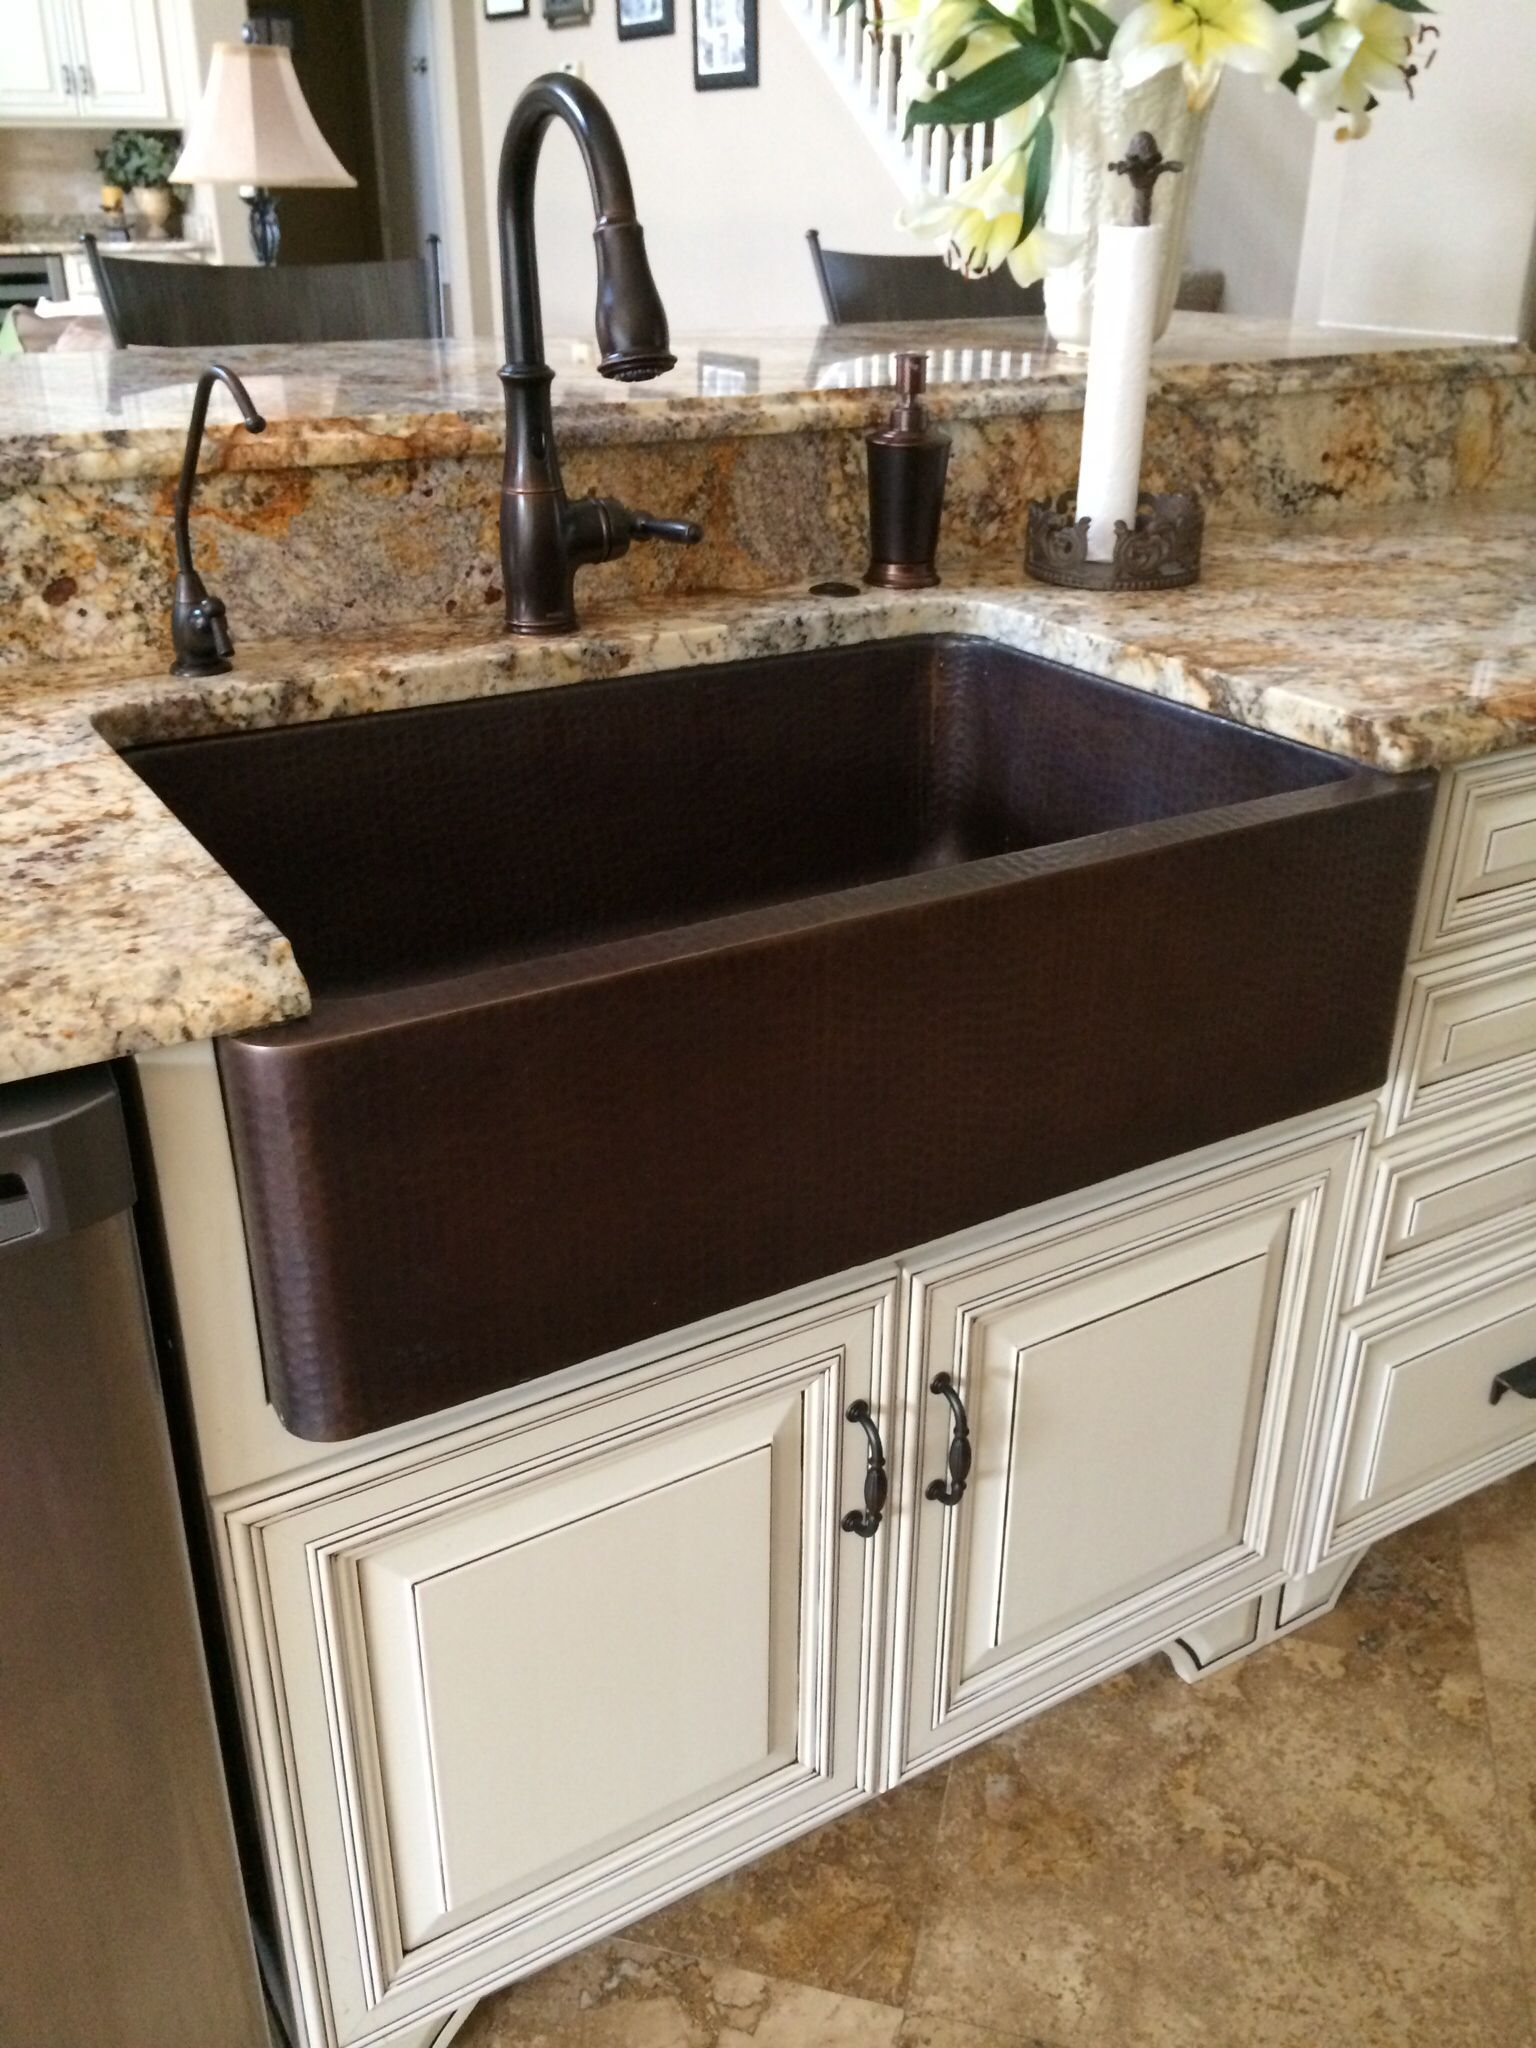 Oil Rubbed Bronze Farmhouse Sink.Hammered Copper Farm Sink Moen Oil Rubbed Bronze Touch Less